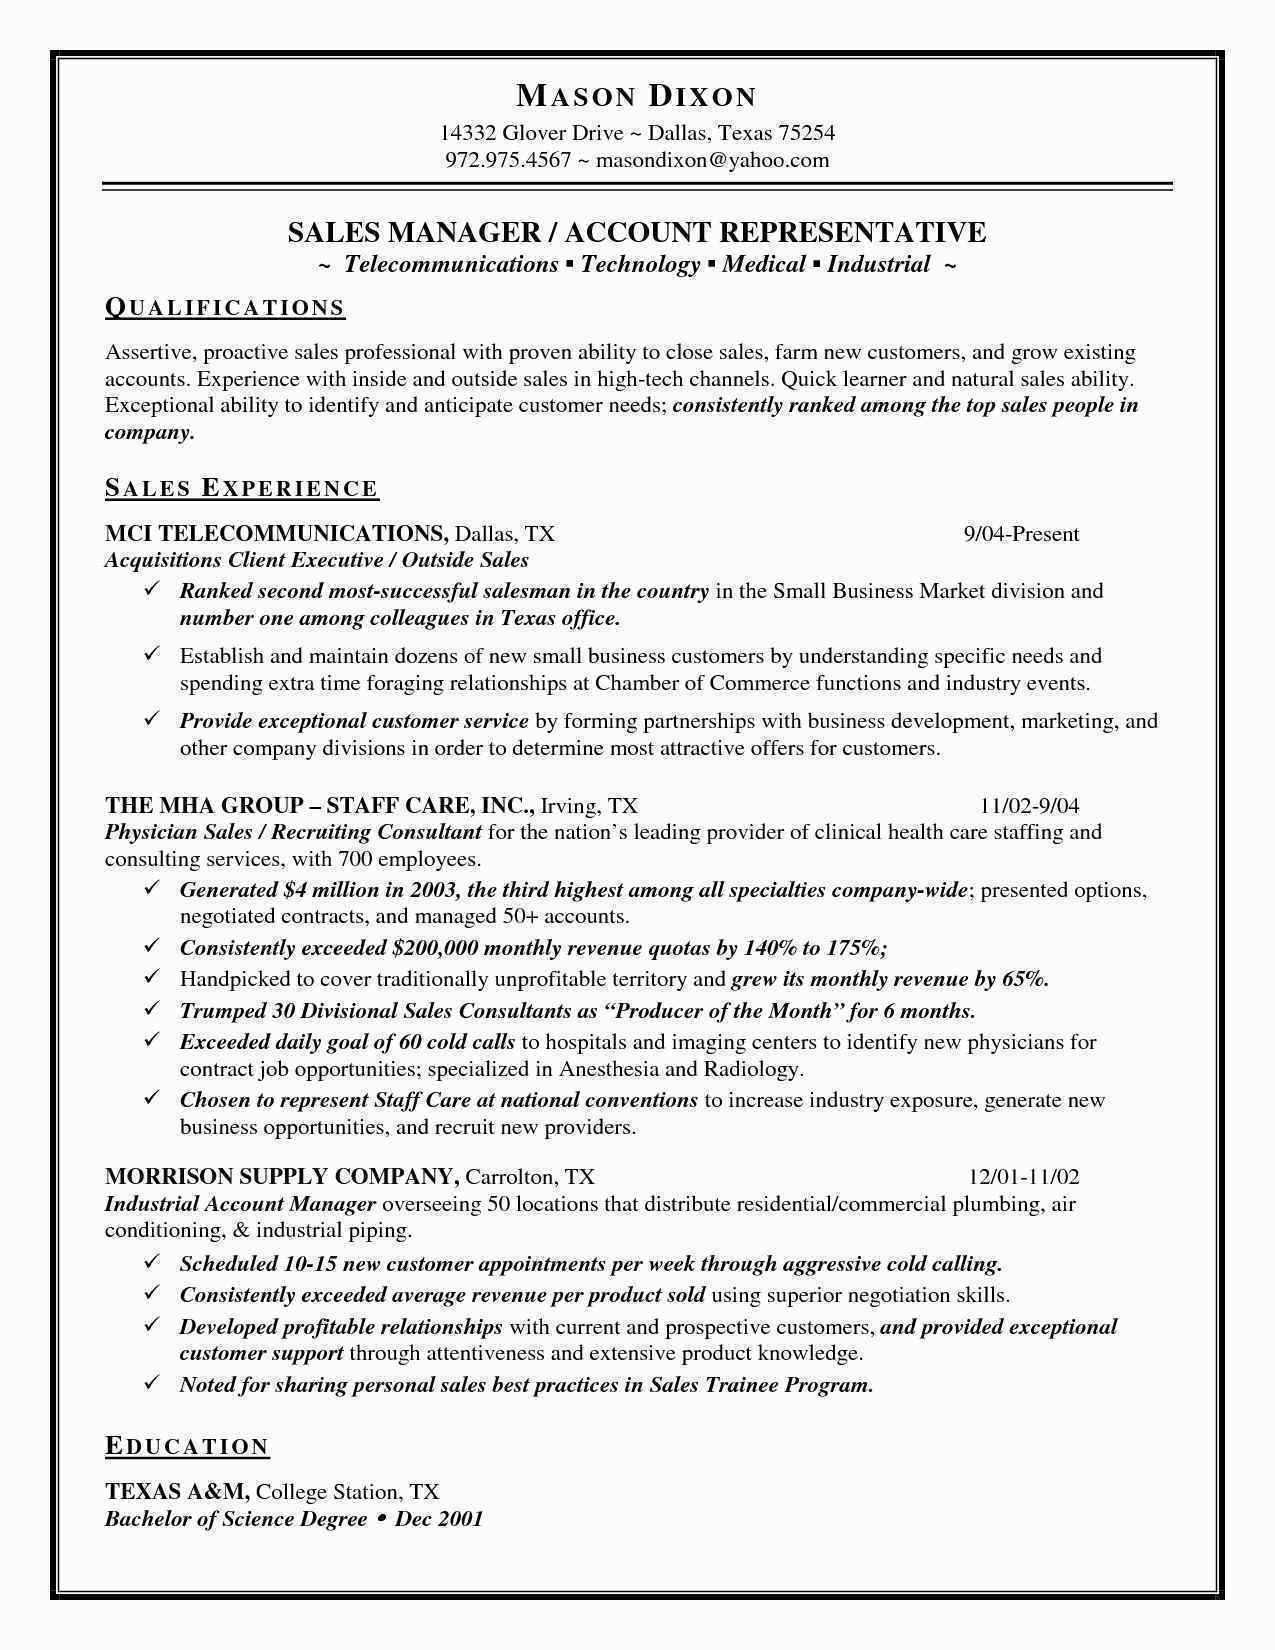 Sales Rep Resume Examples - Resume Samples for Sales Representative New Sales Resume Sample New